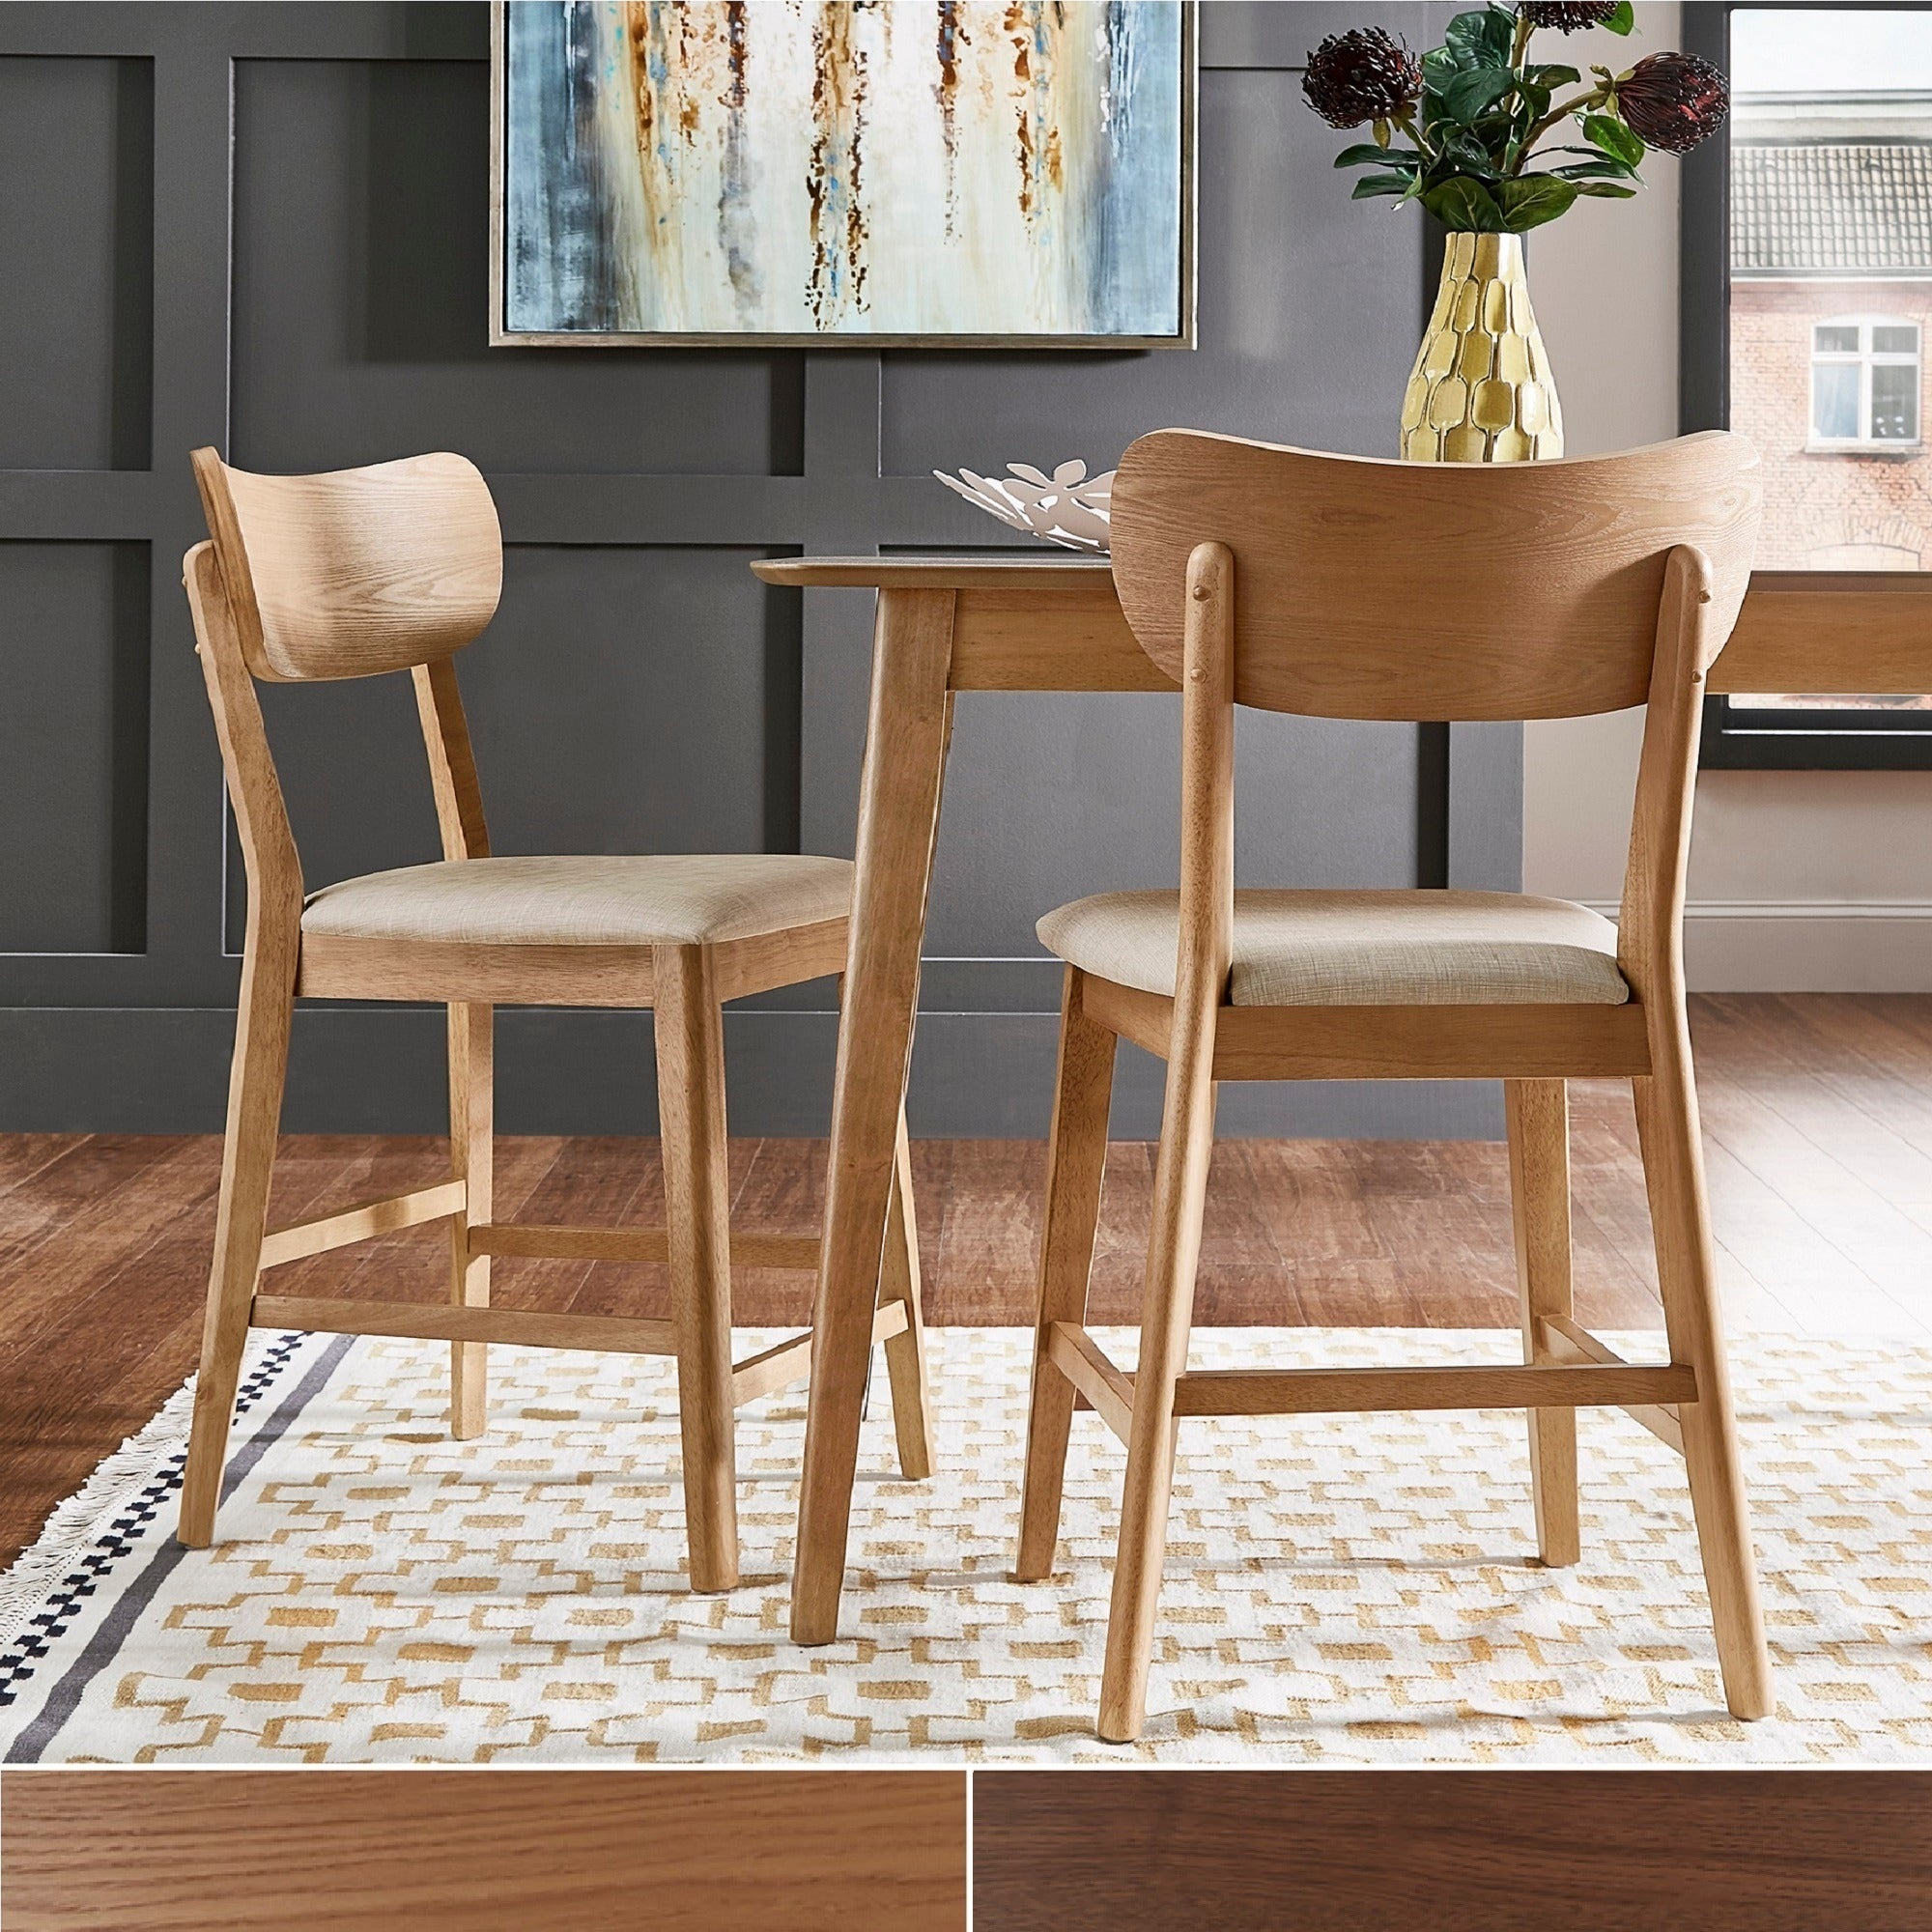 Well Liked Penelope 3 Piece Counter Height Wood Dining Sets In Shop Penelope Danish Modern Tapered Leg Counter Height Chair (Set Of (#19 of 20)